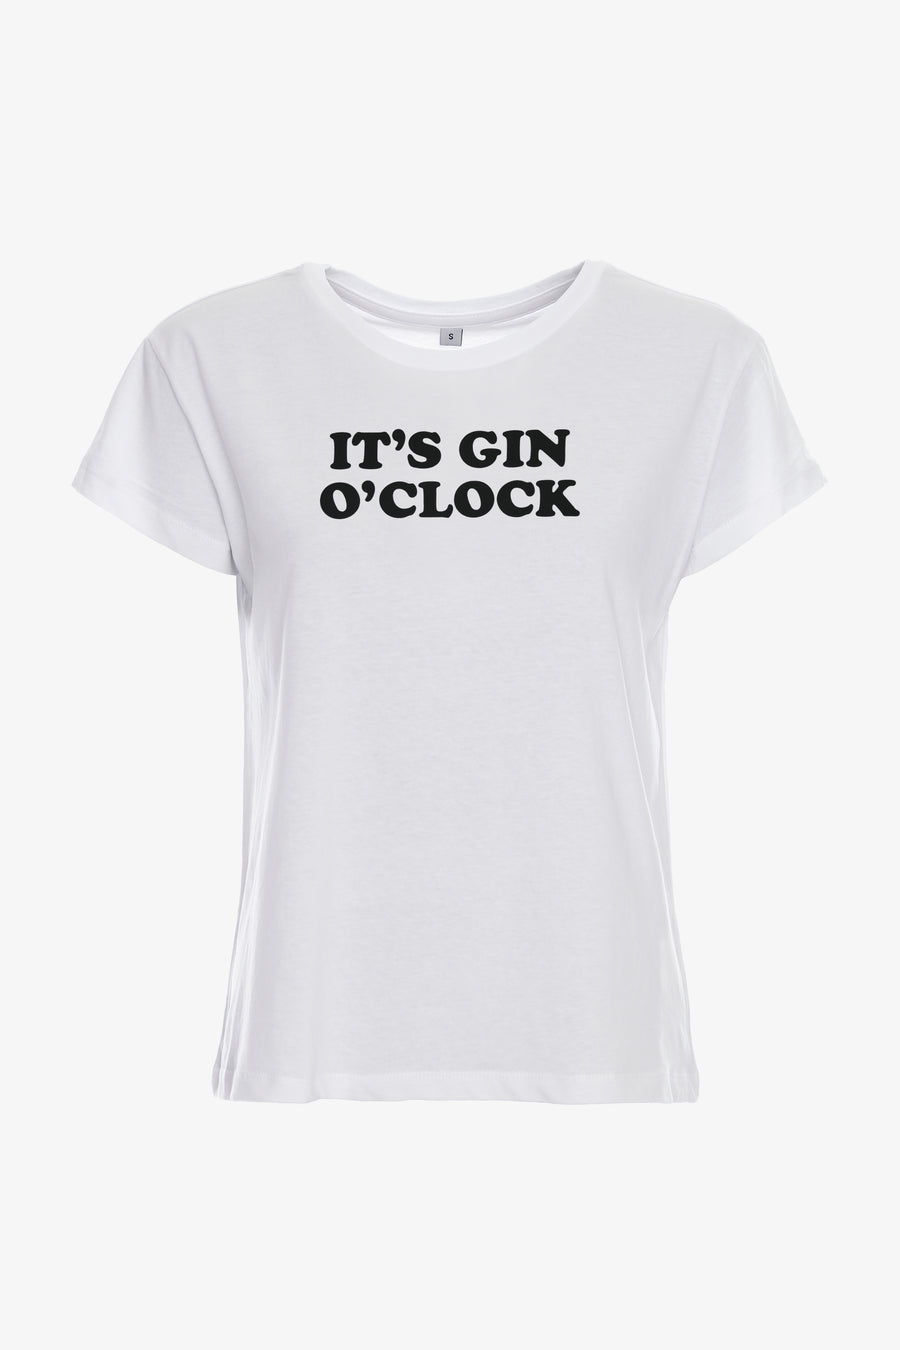 Gossengold - It's Gin O'Clock Statement T Shirt Women - white